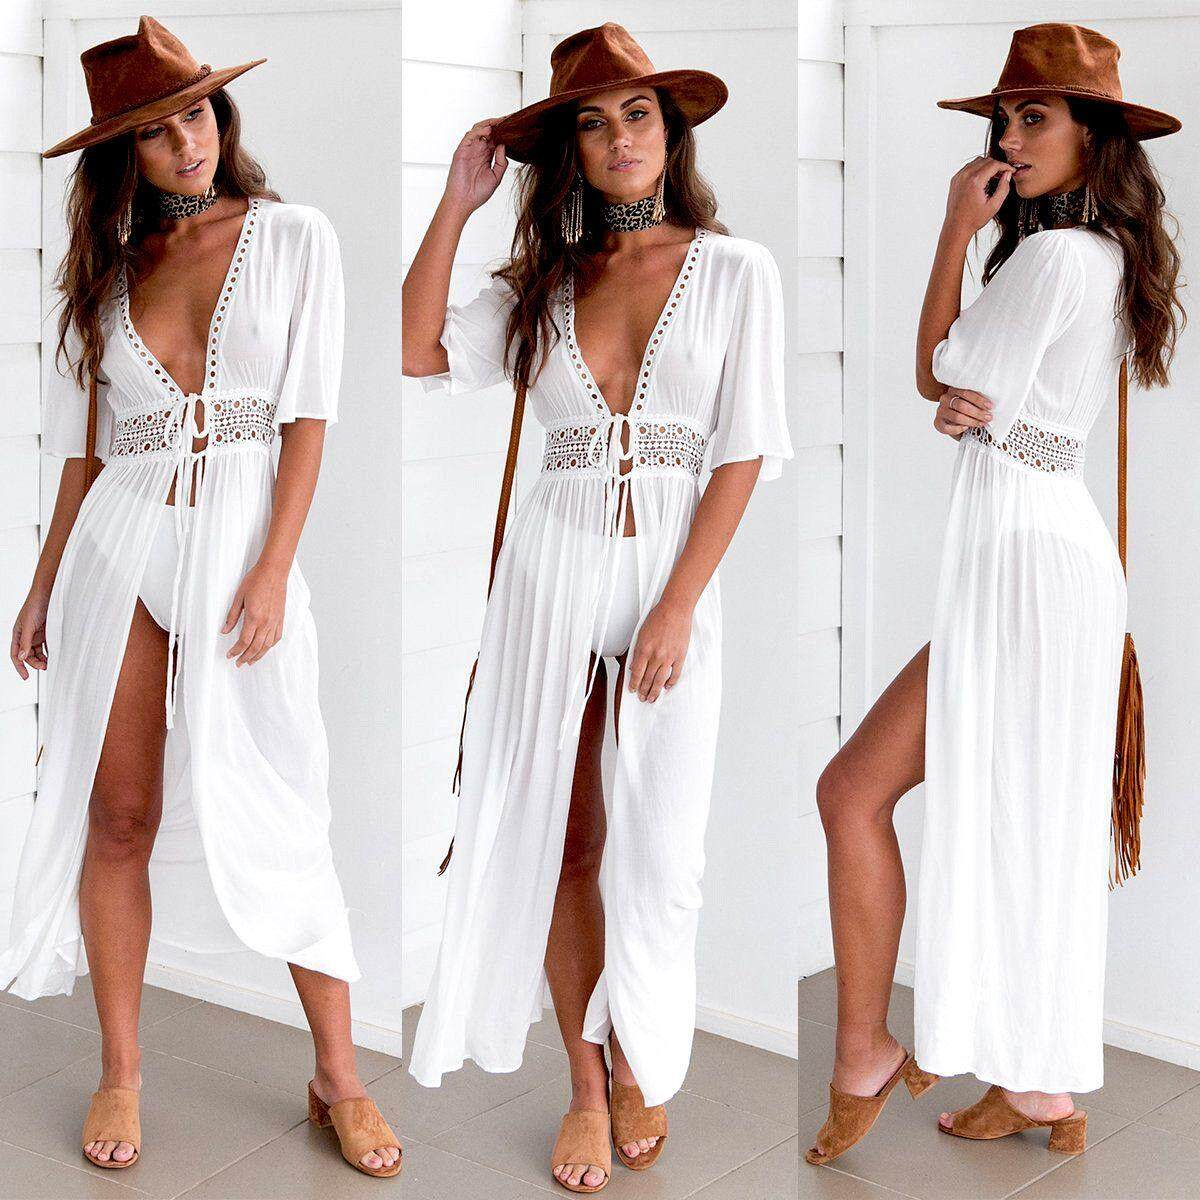 ce13f10c5d8 Women Beach Bikini Cover up Long Kaftan dress Summer Boho Maxi Dress  Swimwear